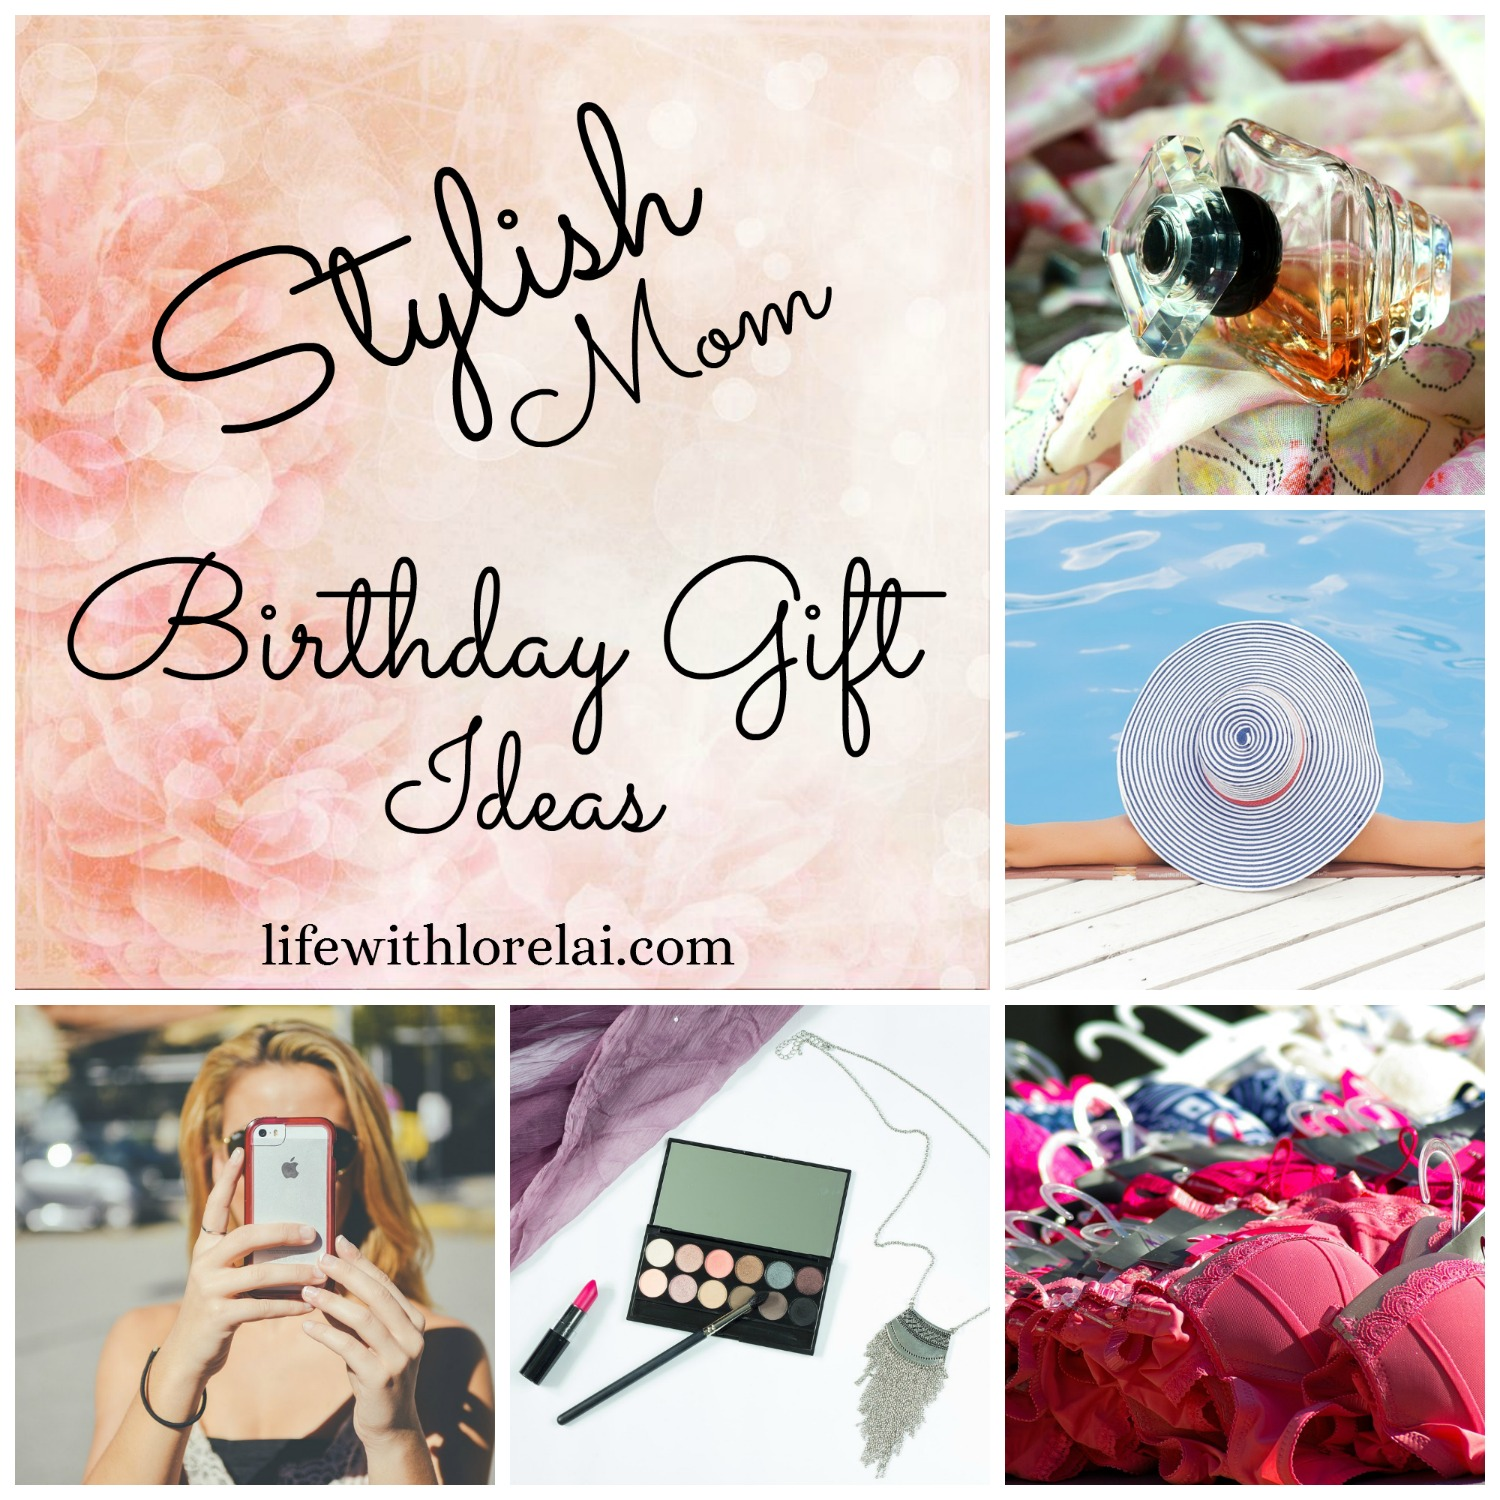 Stylish-Mom-Birthday-Gift-Ideas-Life-With-Lorelai